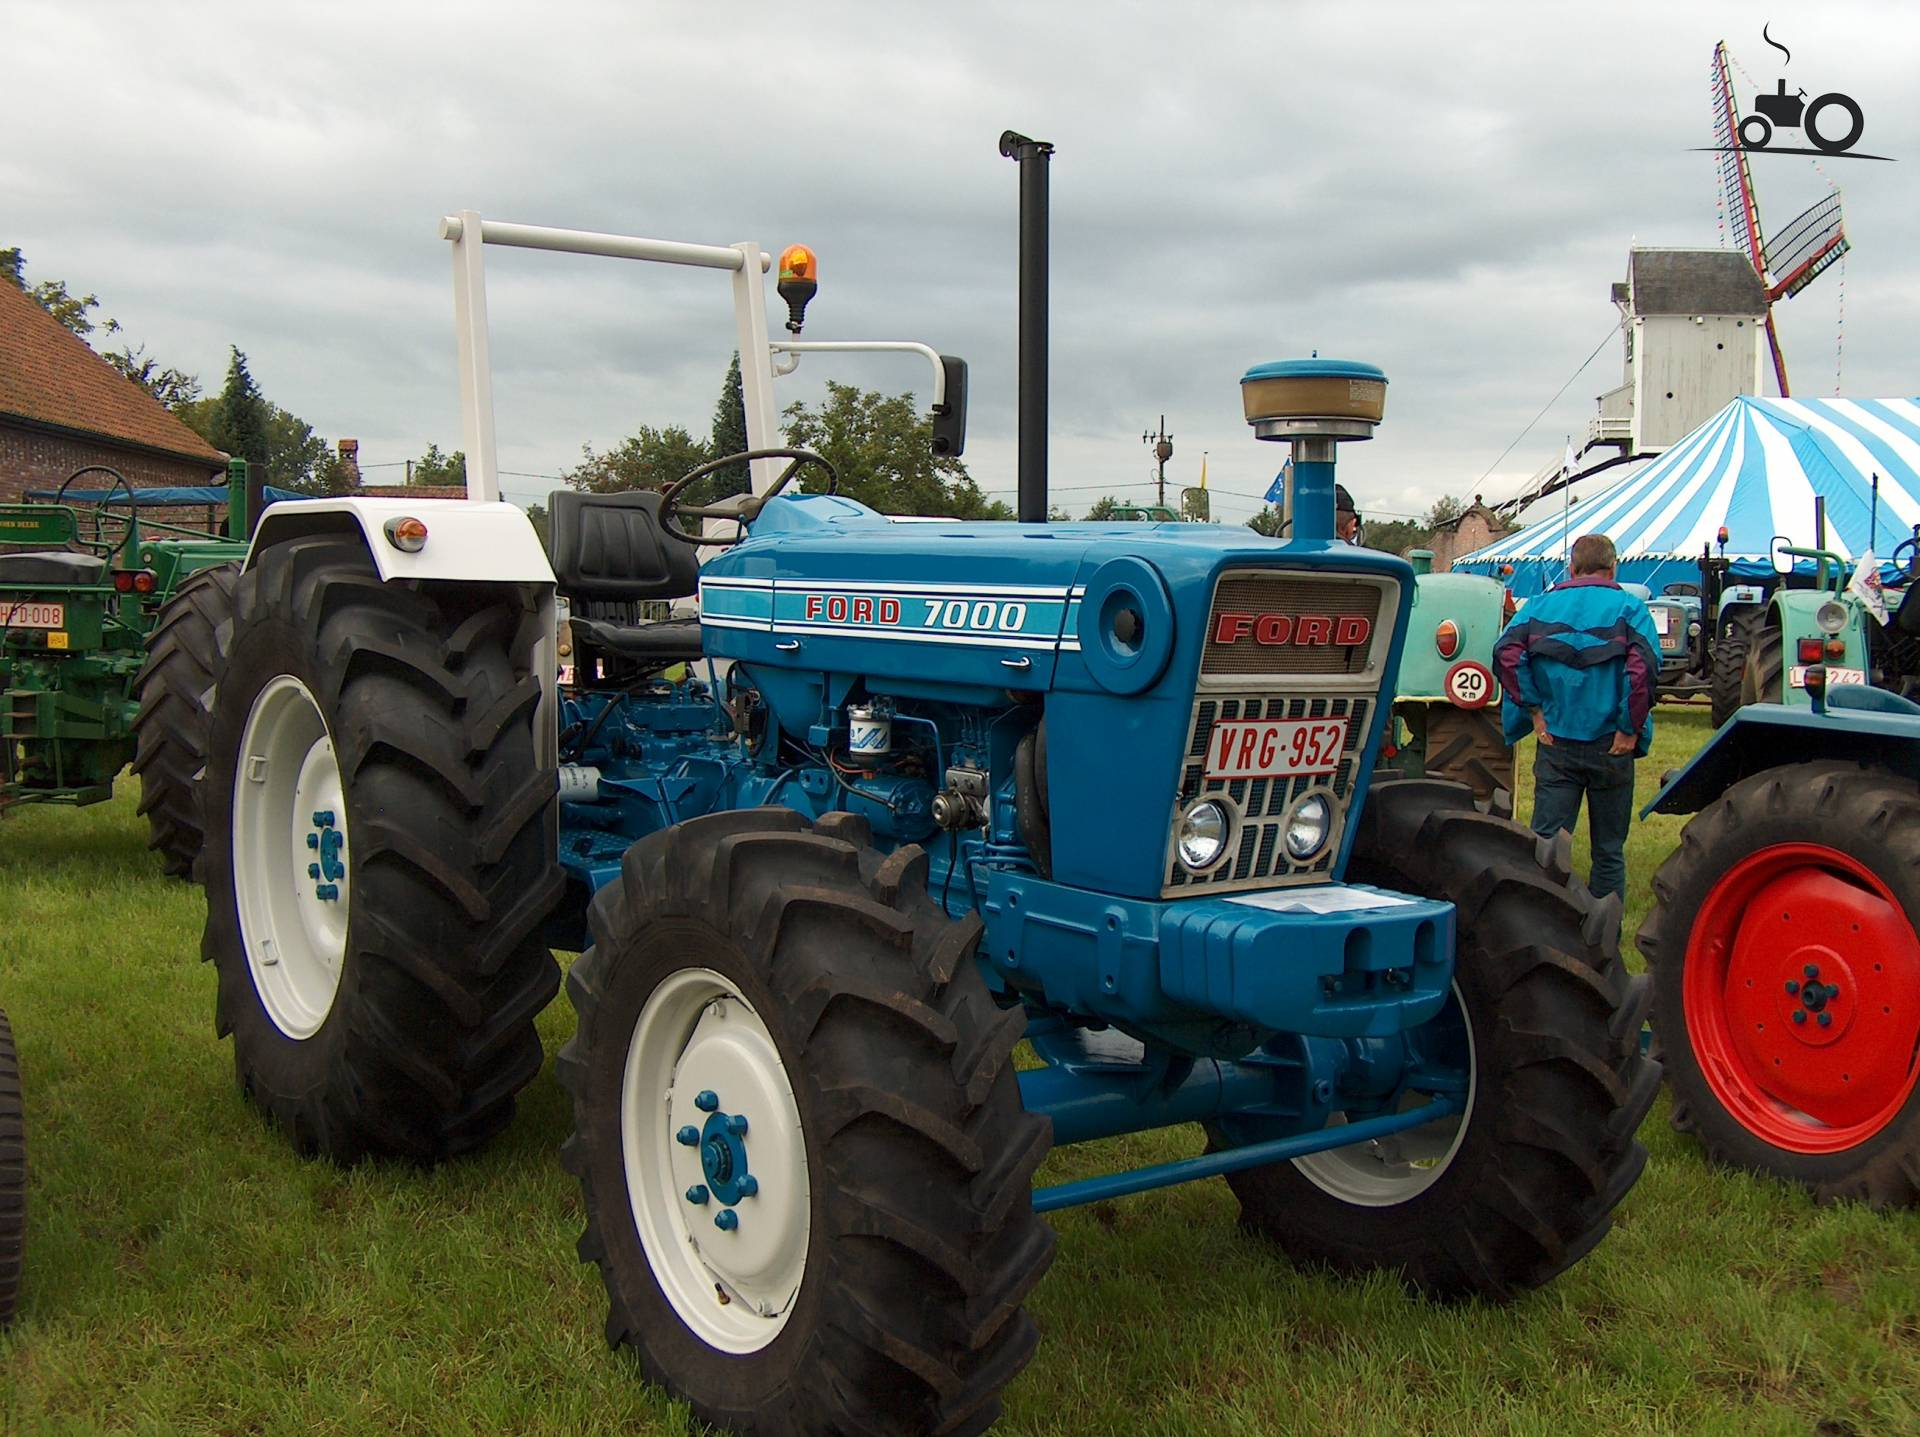 Ford 7000 Tractor For Sale On Craigslist | Autos Post